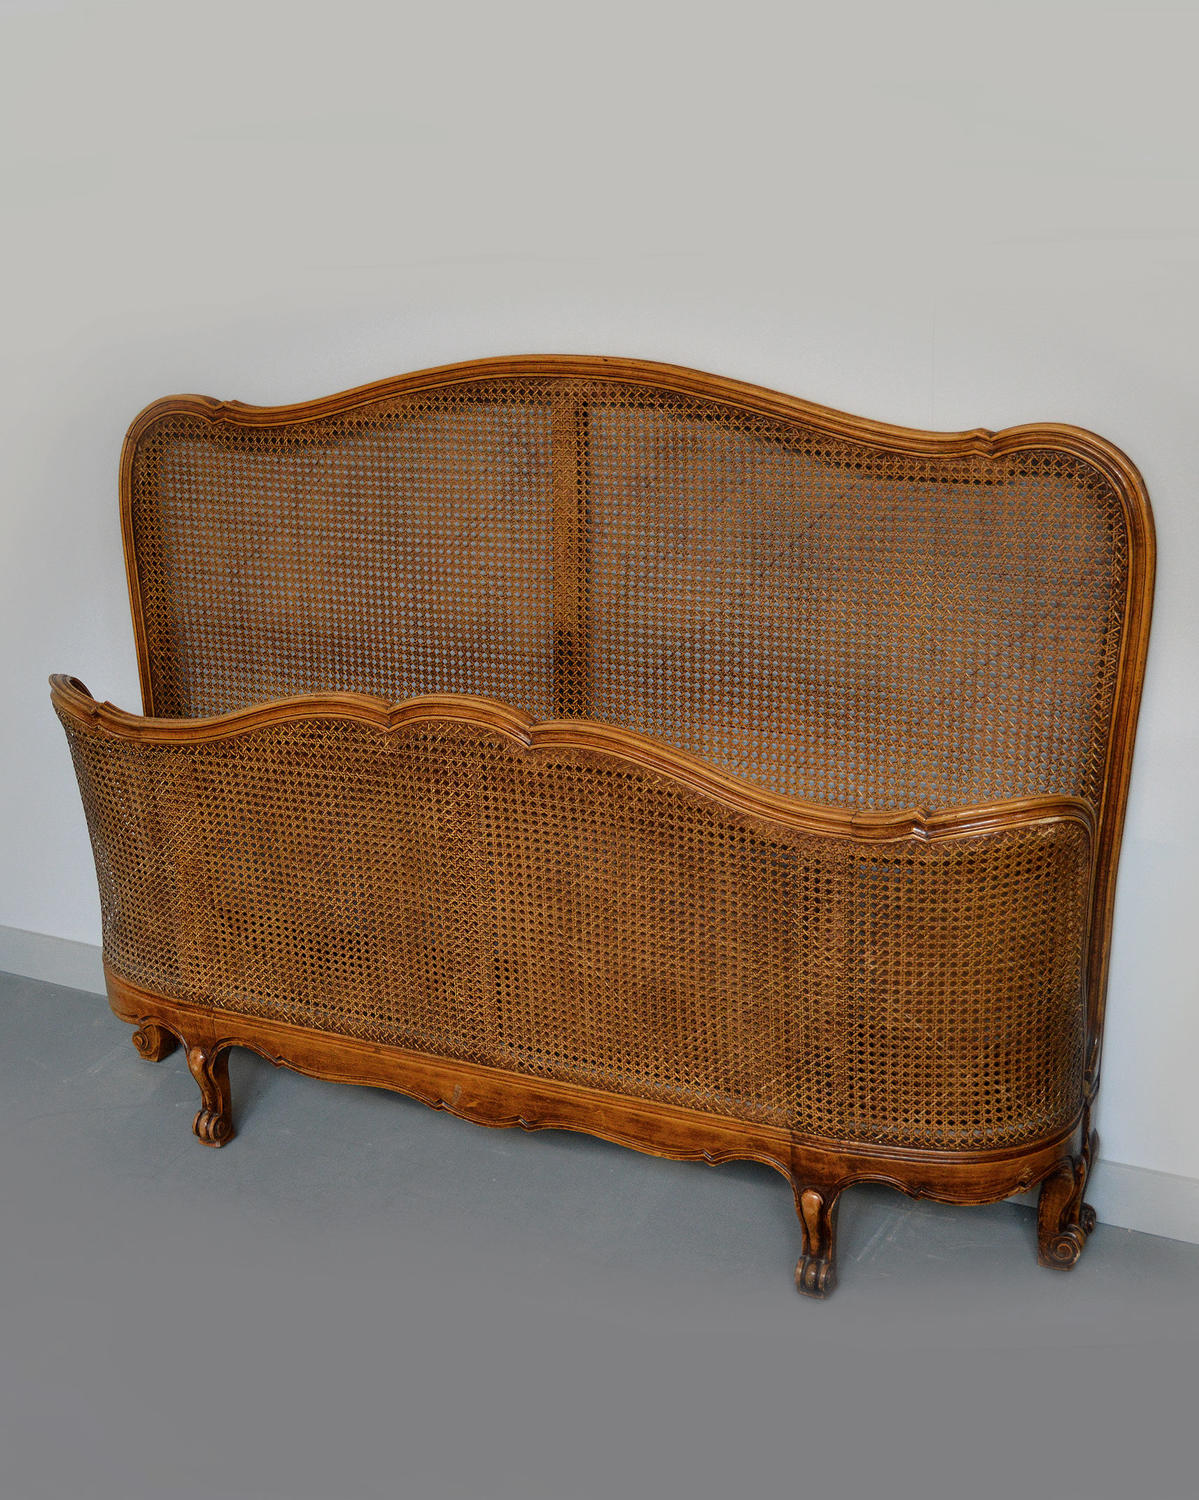 Louis XV style King size Cane bedstead